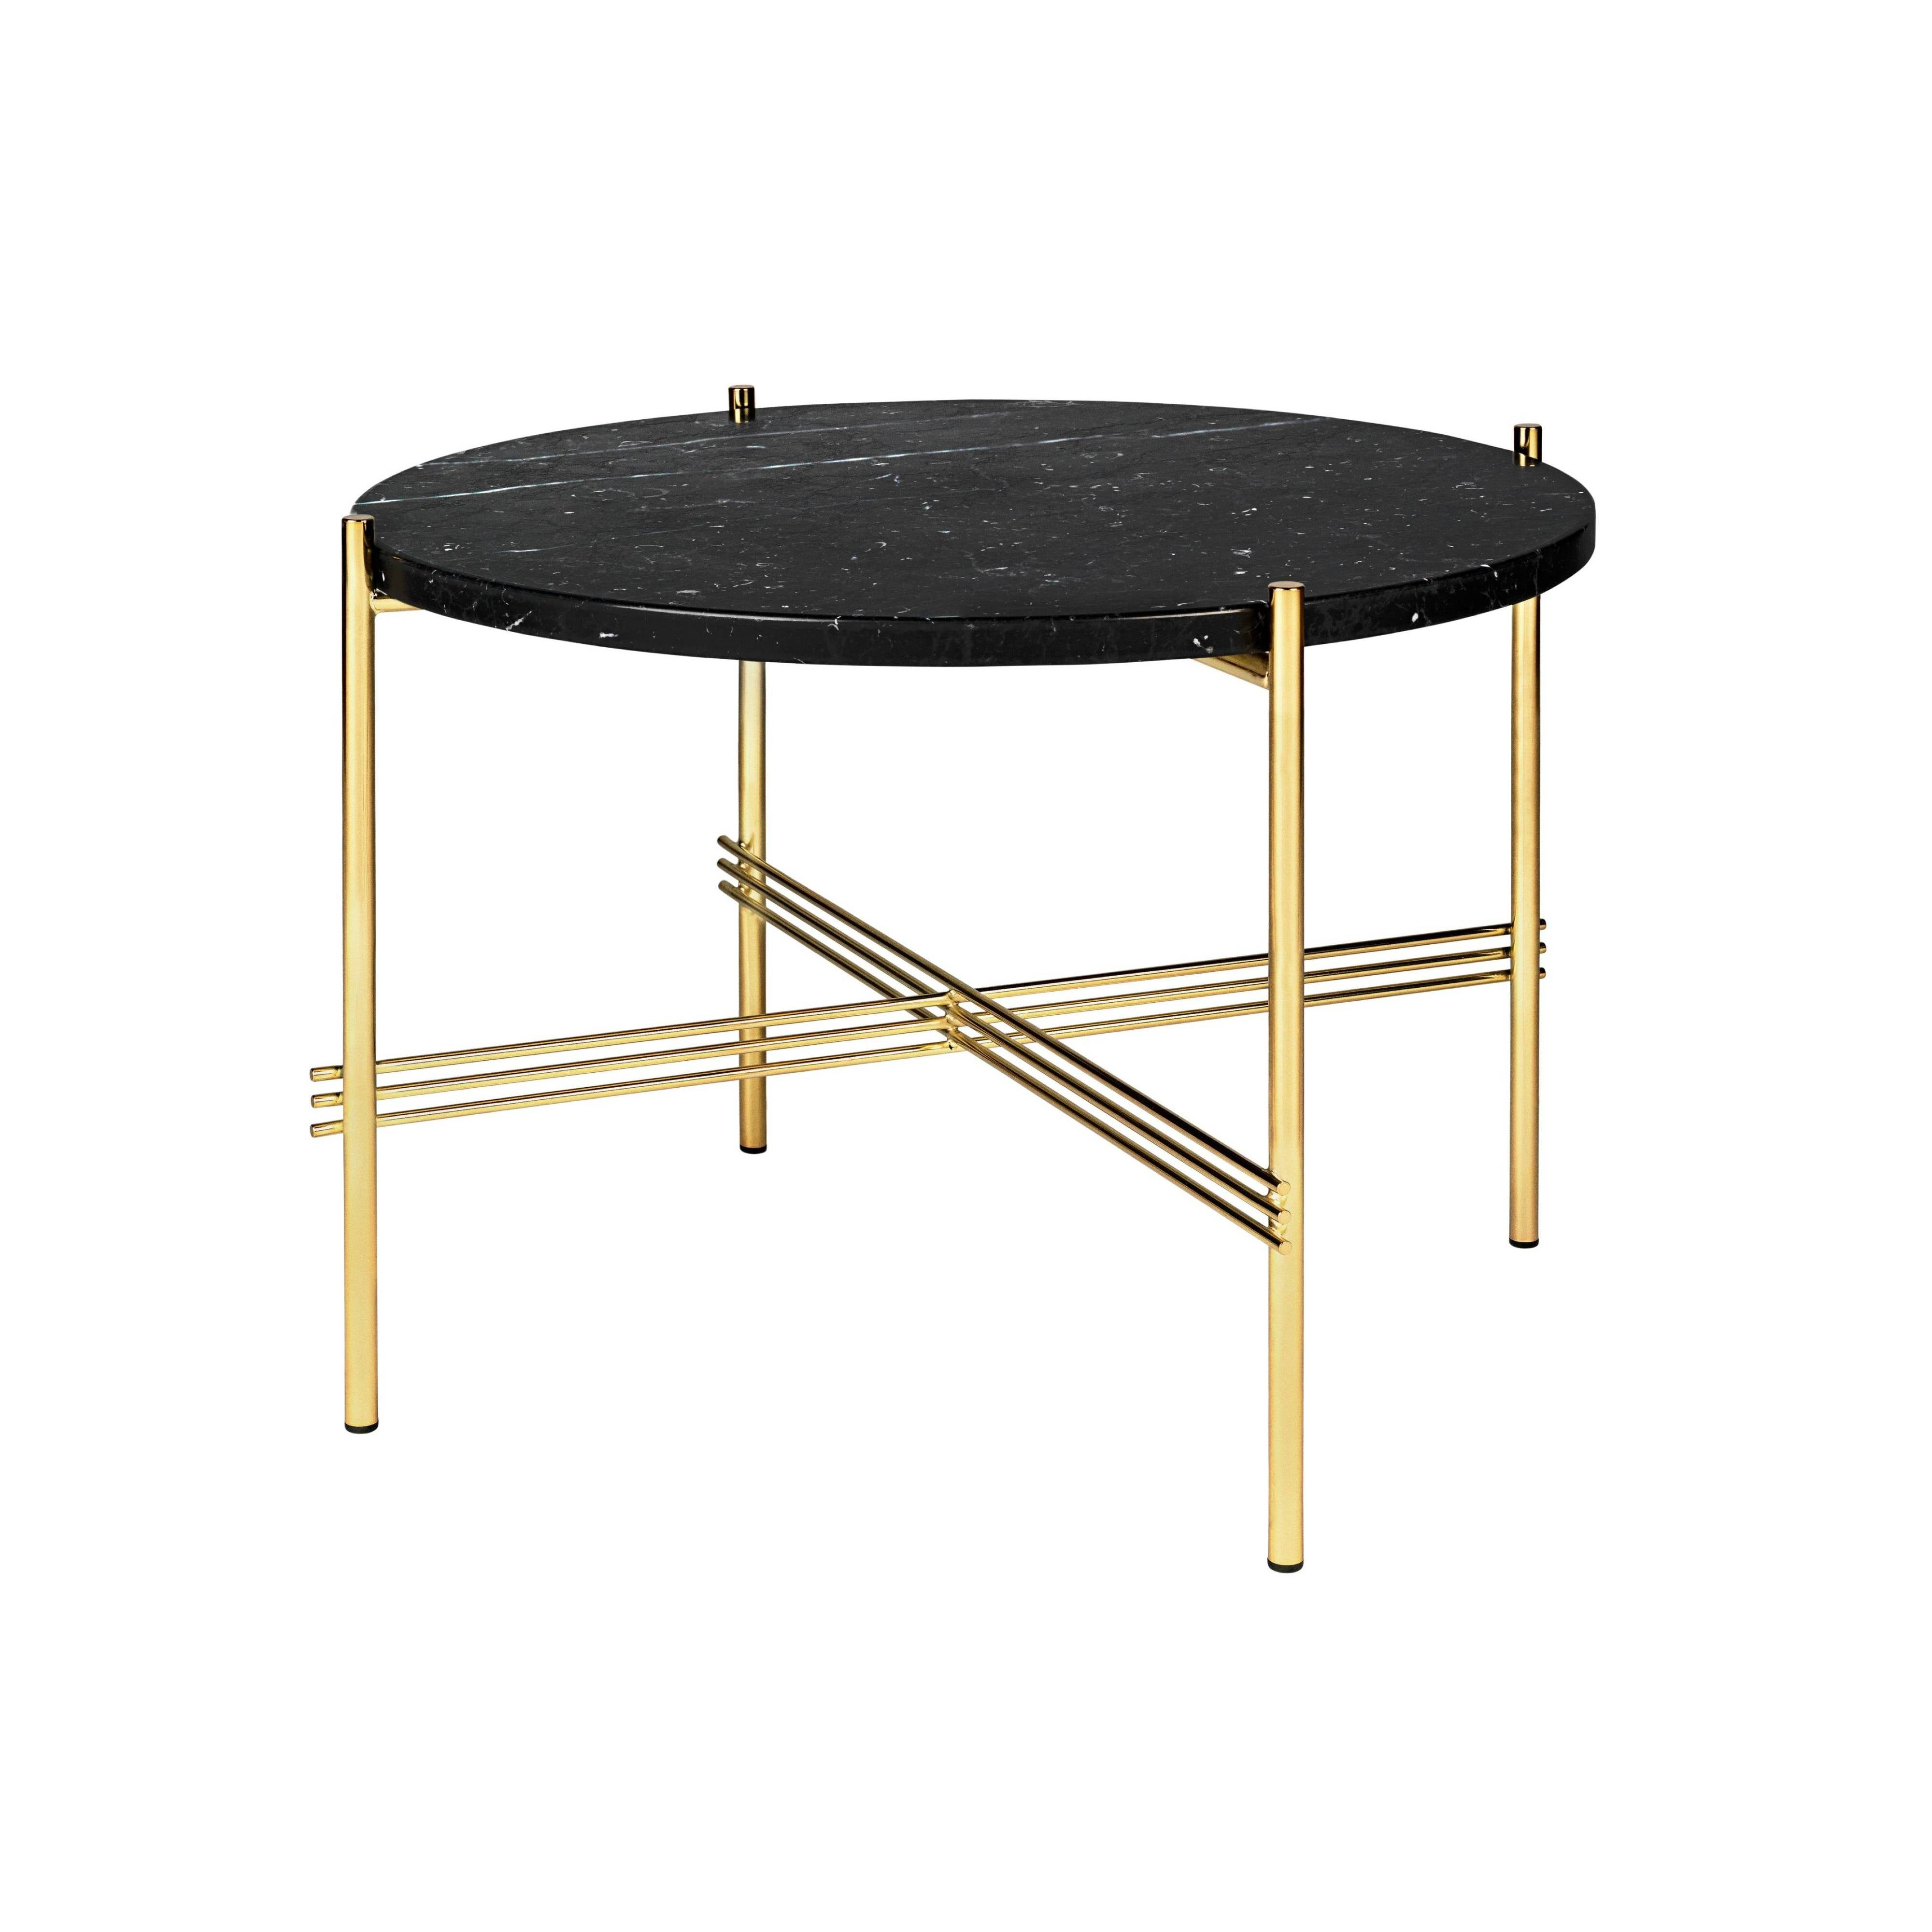 TS Round Coffee Table: Small + Brass Base + Black Marquina Marble